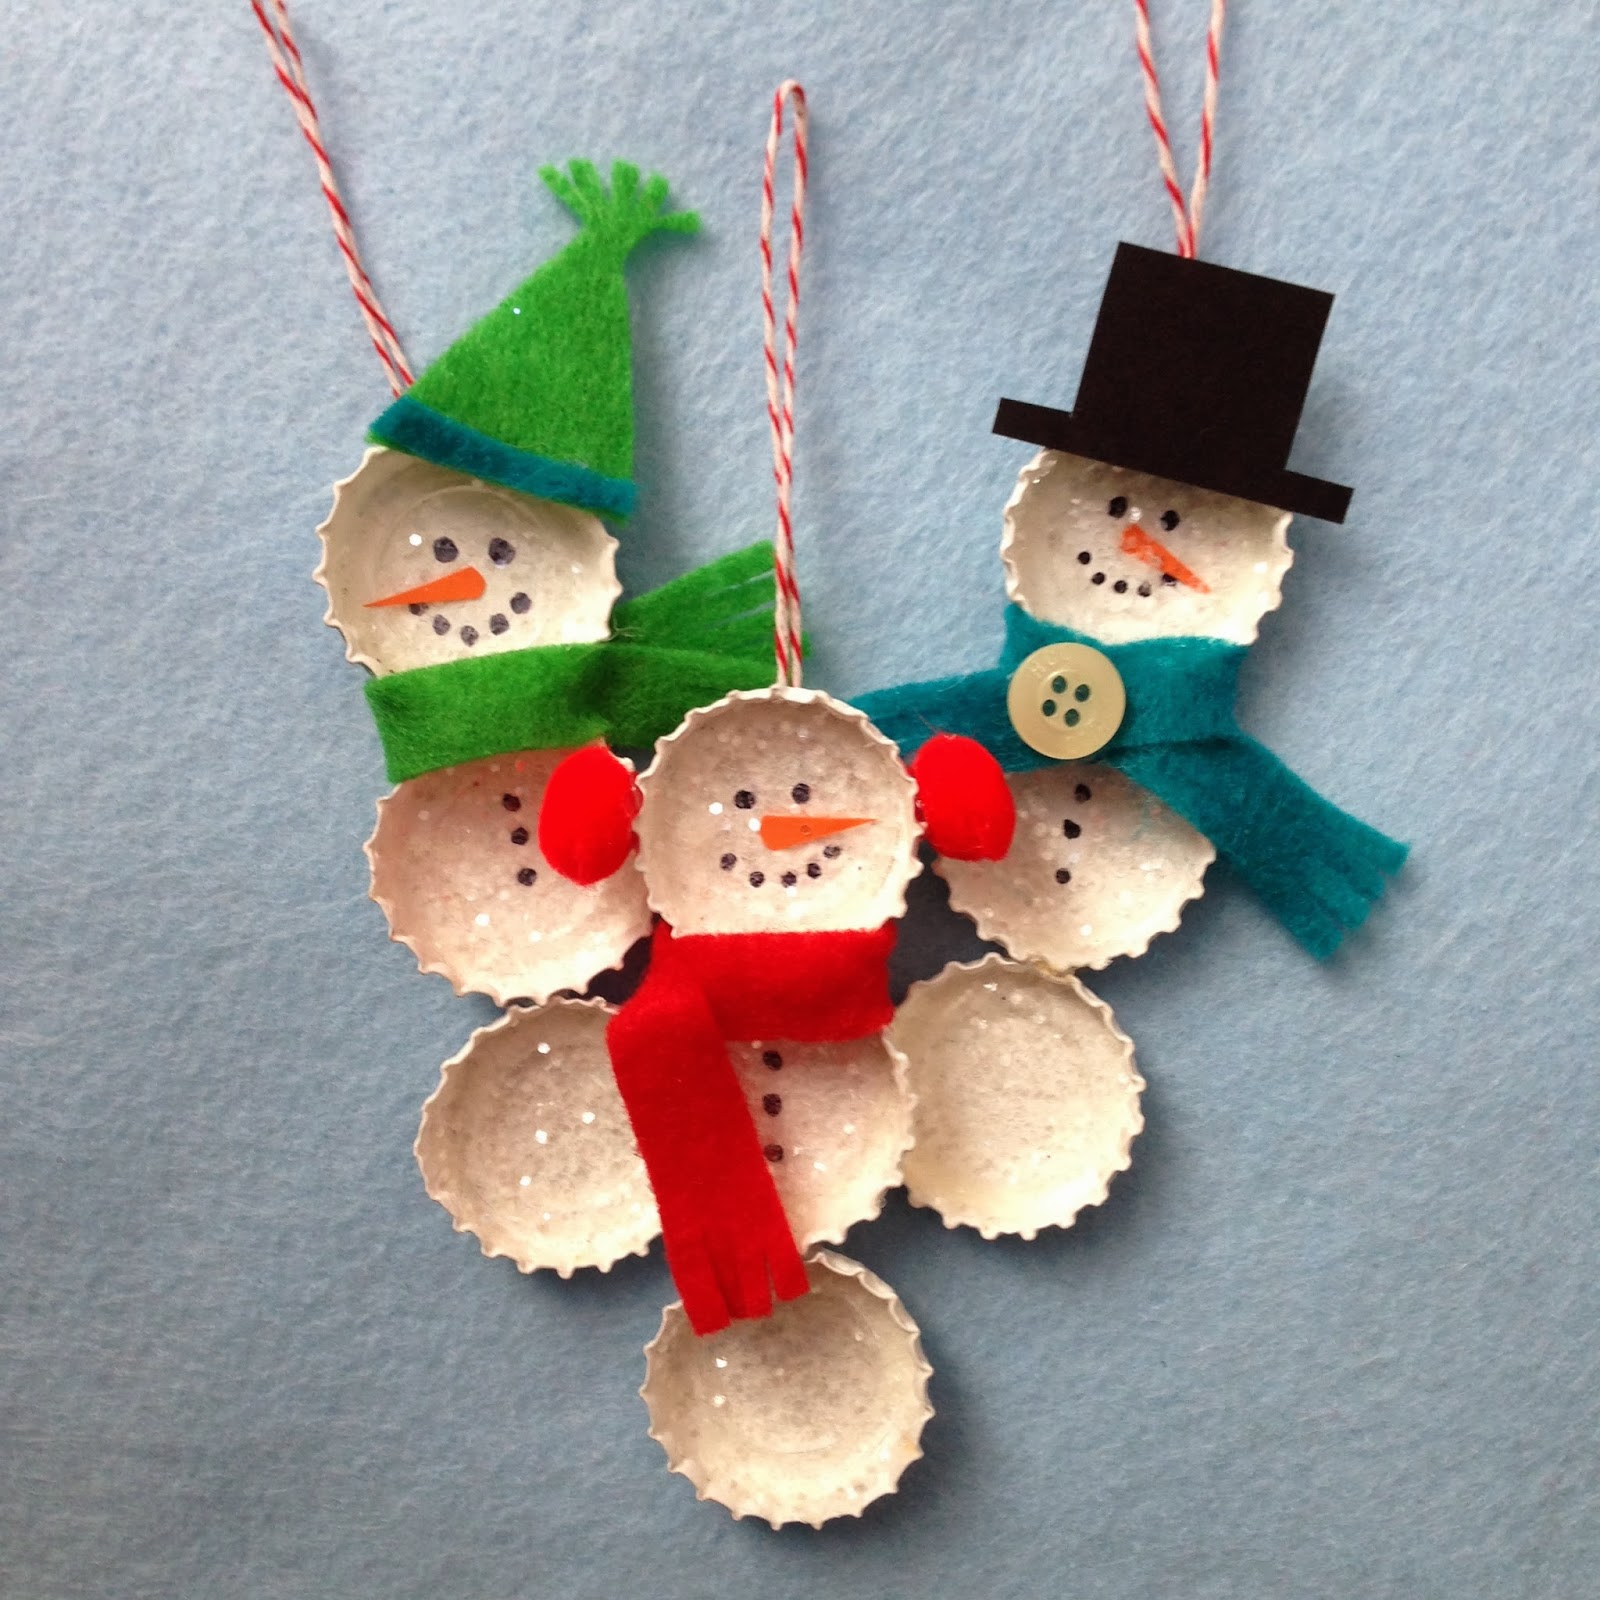 Christmas Crafts Made With Paper And Glitter